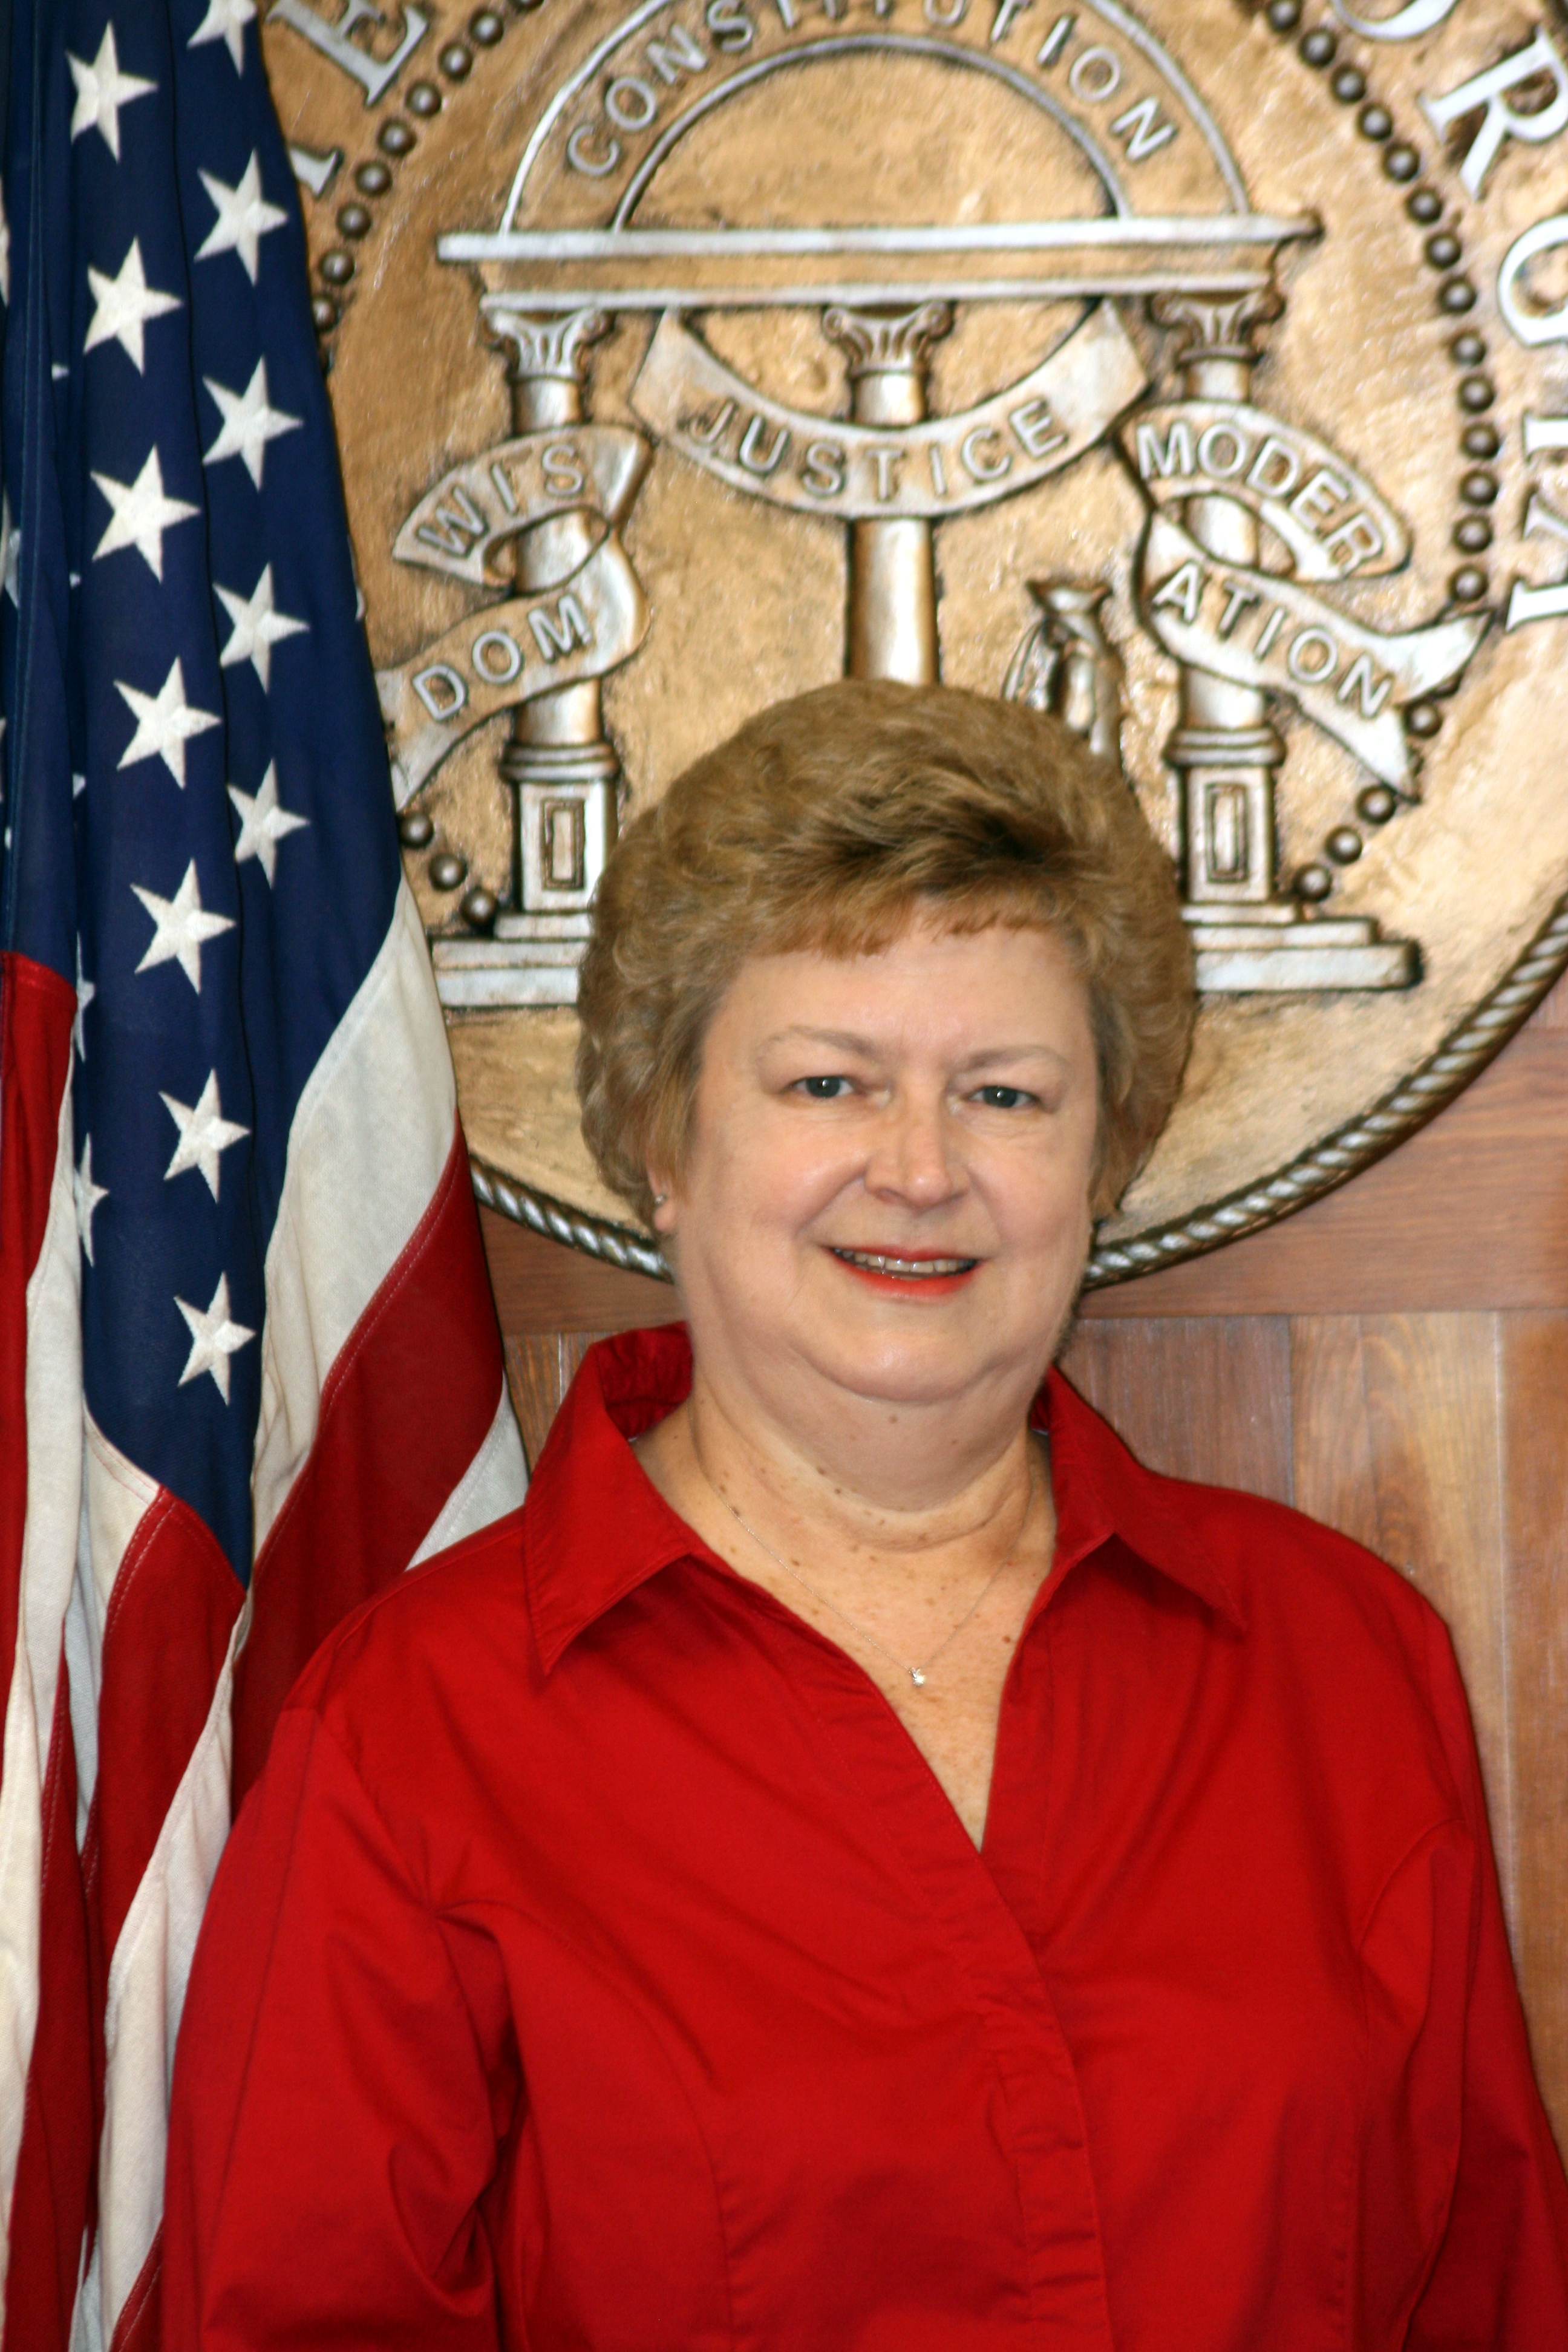 Debra Mizell Tax Commissioner